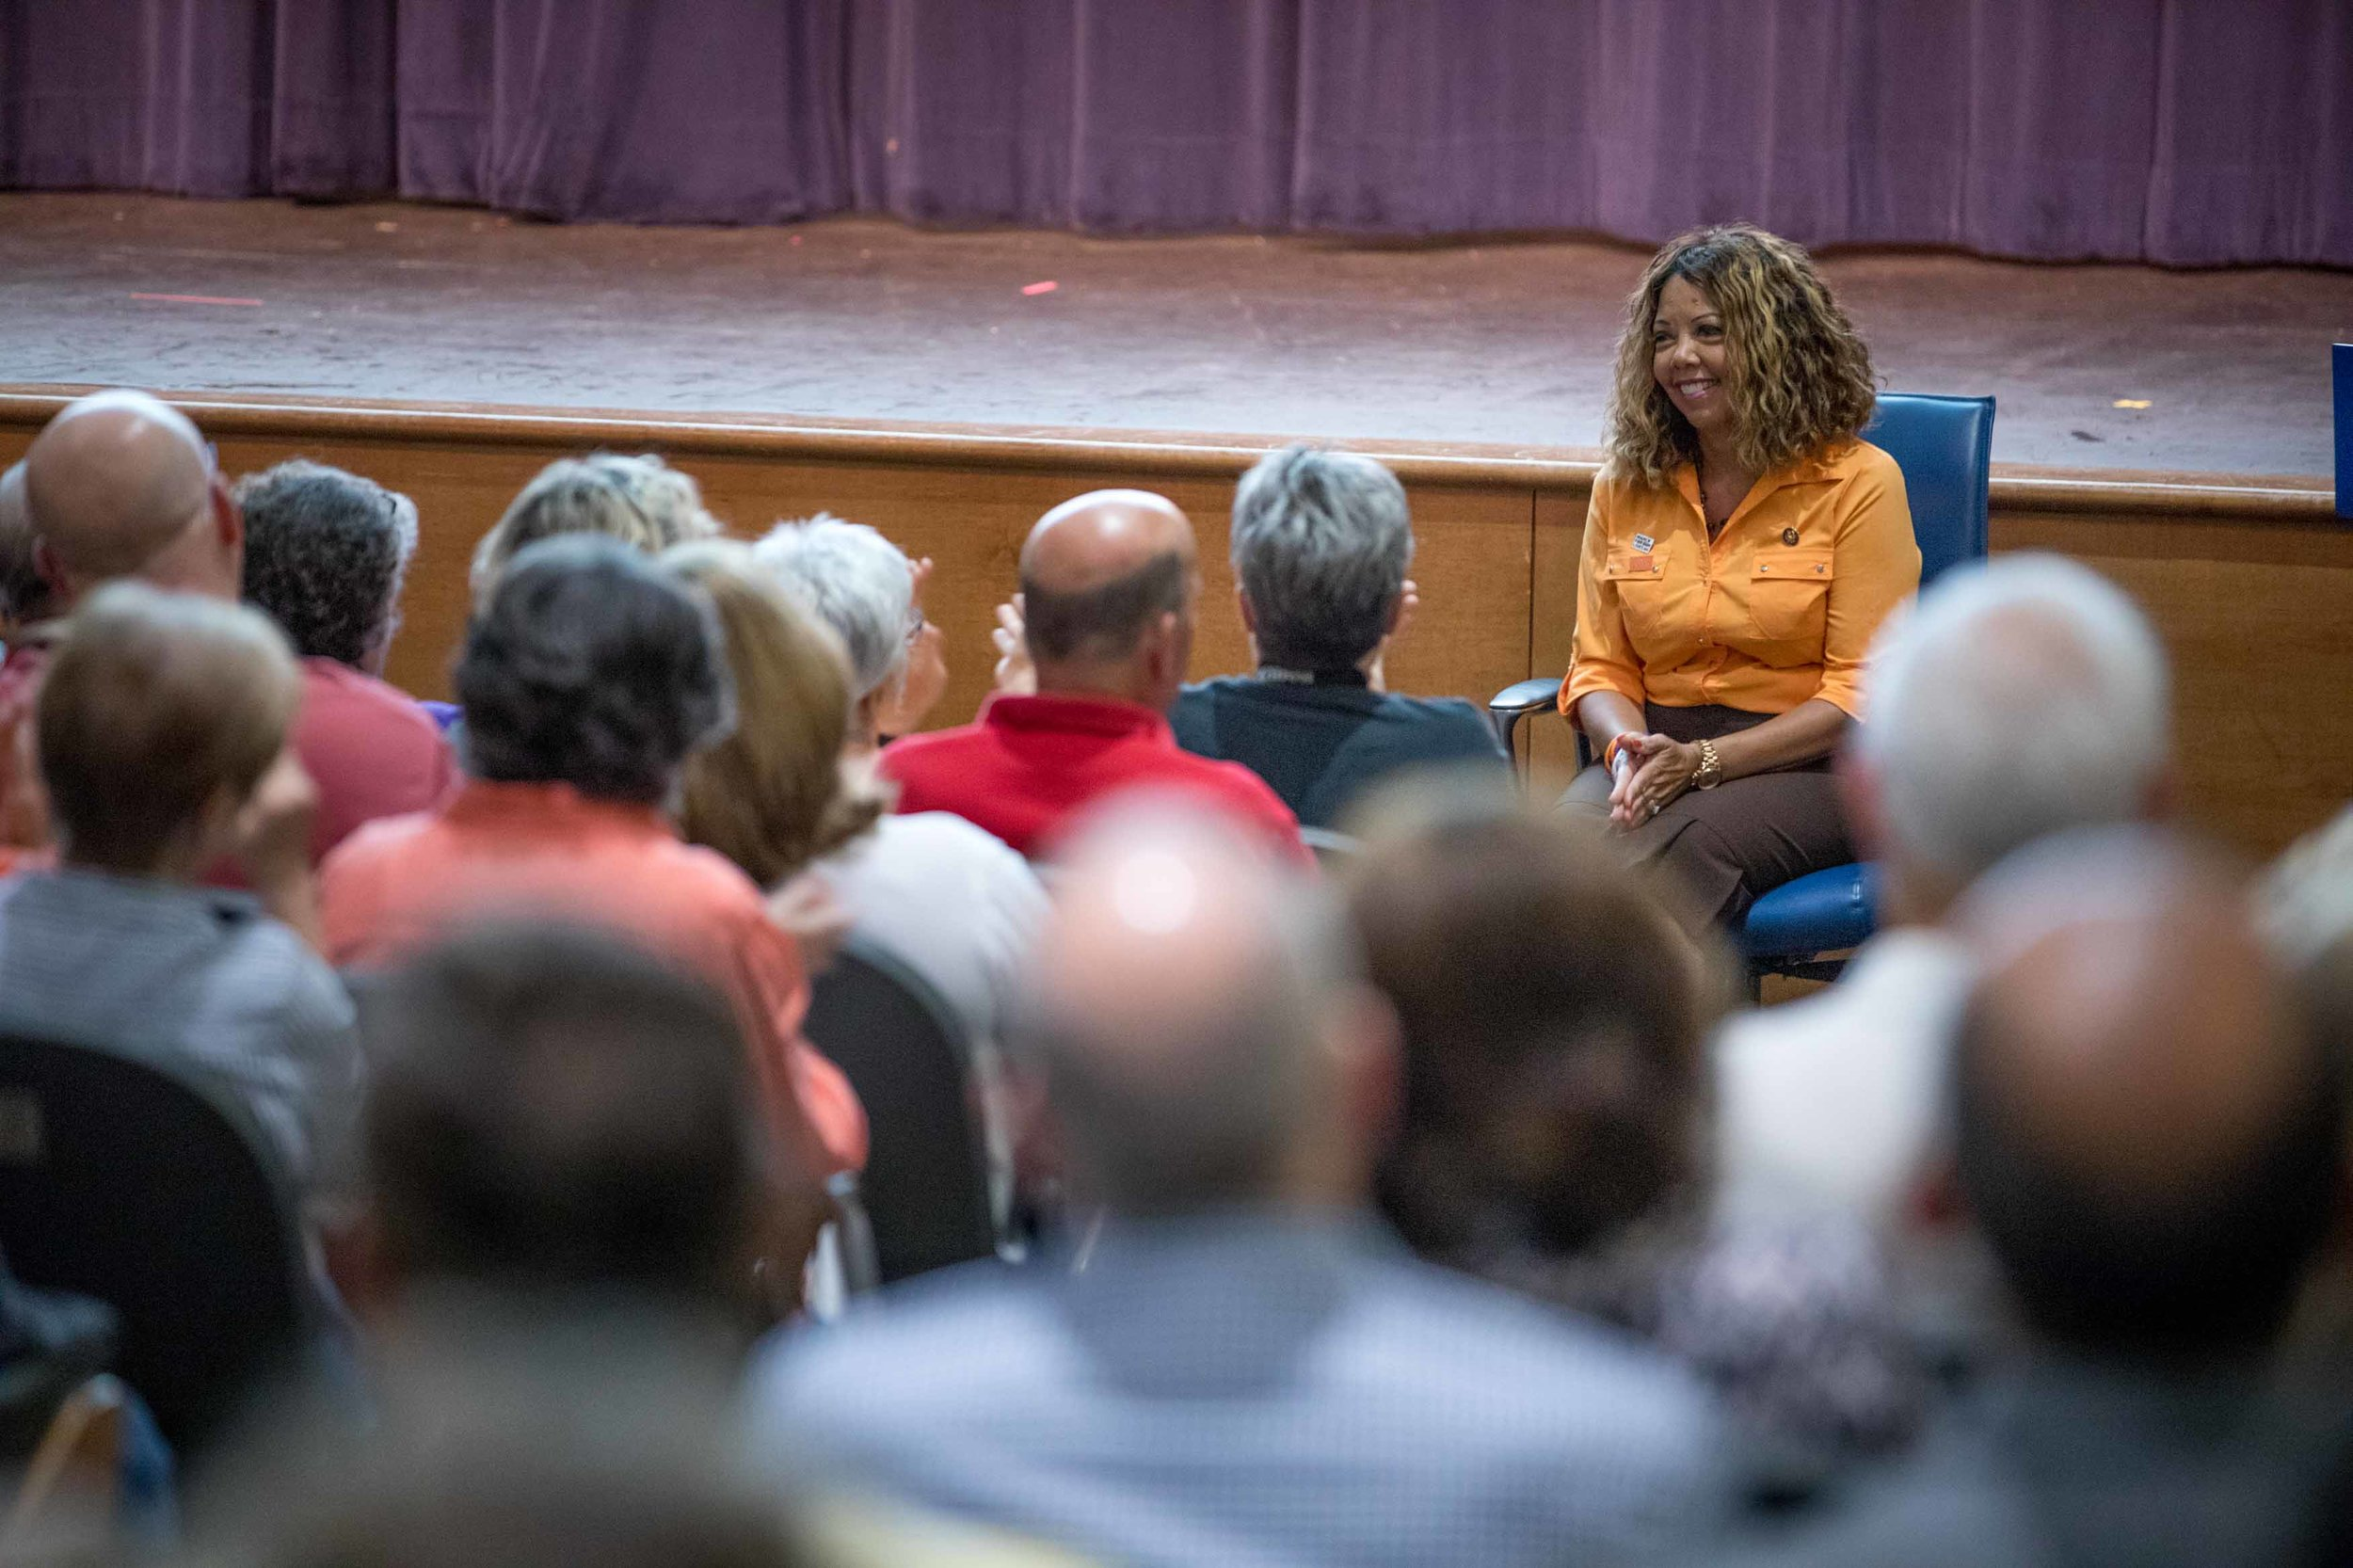 Rep. Lucy McBath, D-Ga., before speaking at a town hall at Dunwoody High School on Saturday, June 8, 2019 in Dunwoody, Ga. Branden Camp for AJC